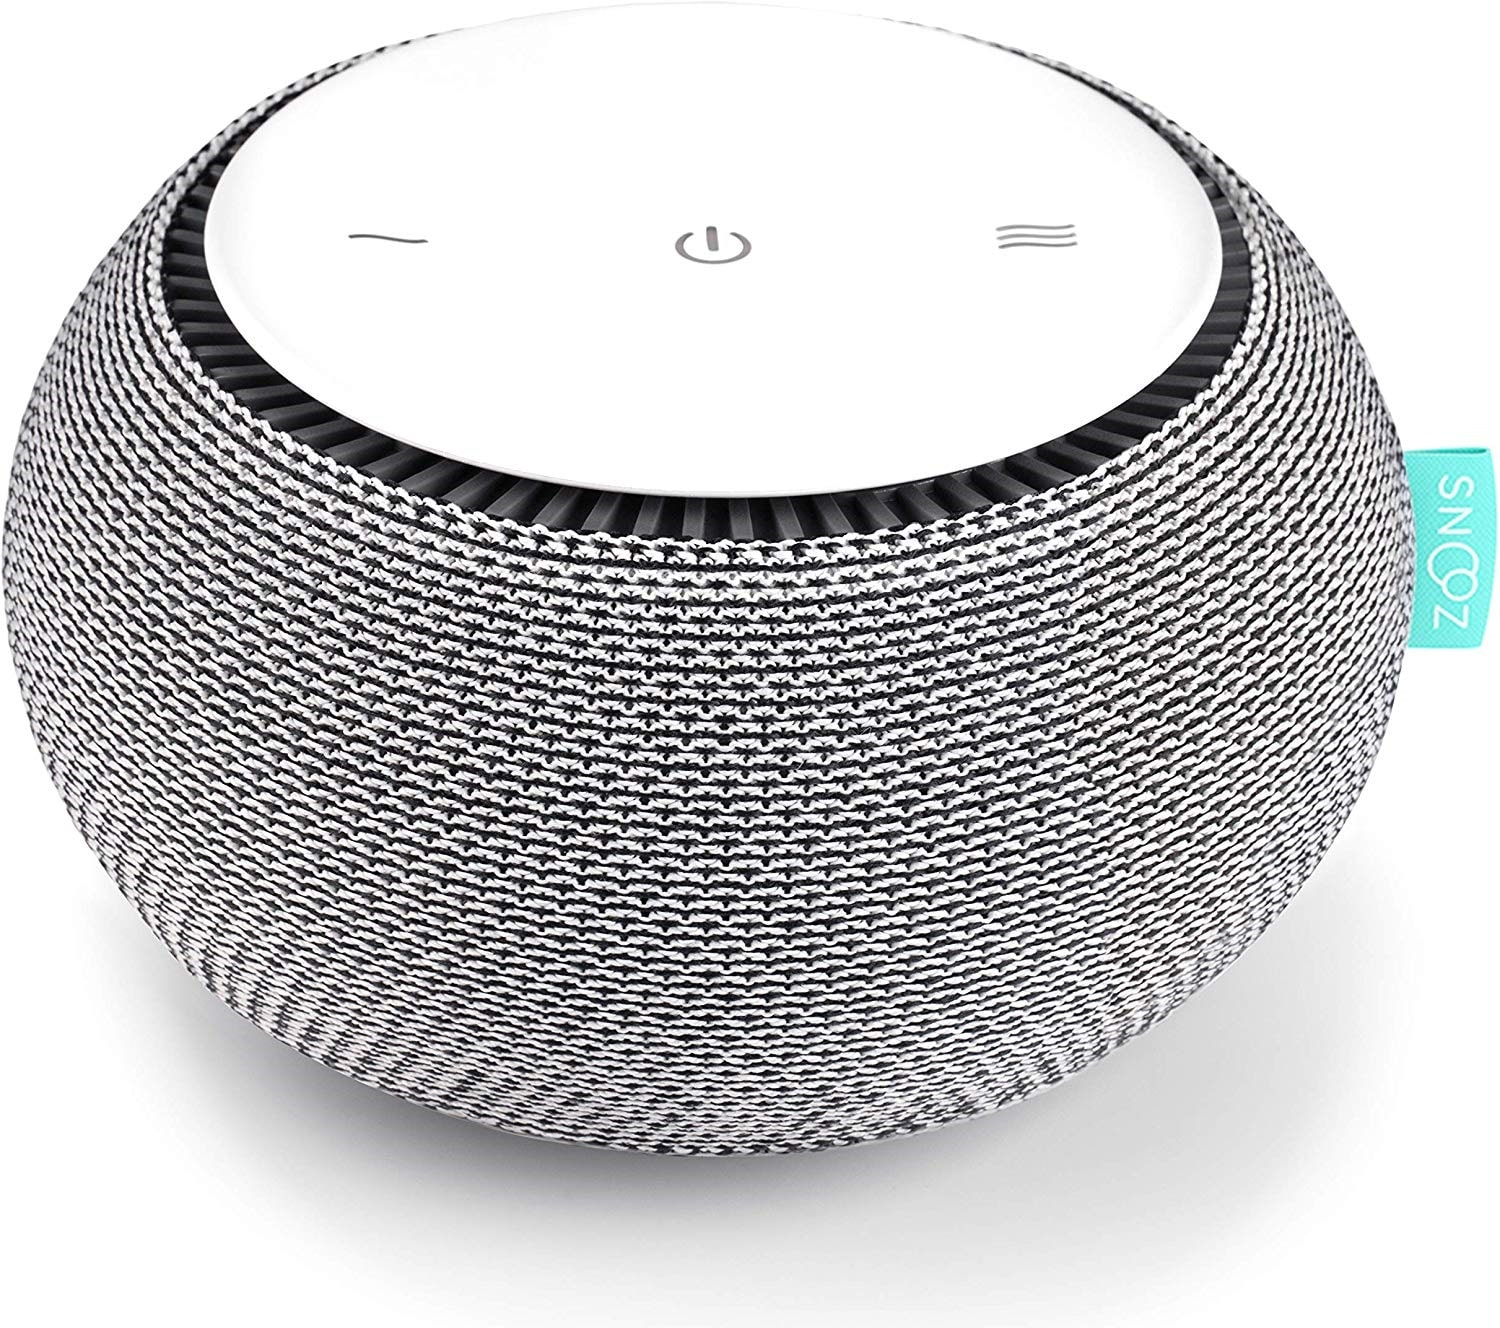 7.SNOOZ White Noise Sound Machine - Real Fan Inside for Non-Looping White Noise Sounds - App-Based Remote Control, Sleep Timer, and Night Light - Cloud